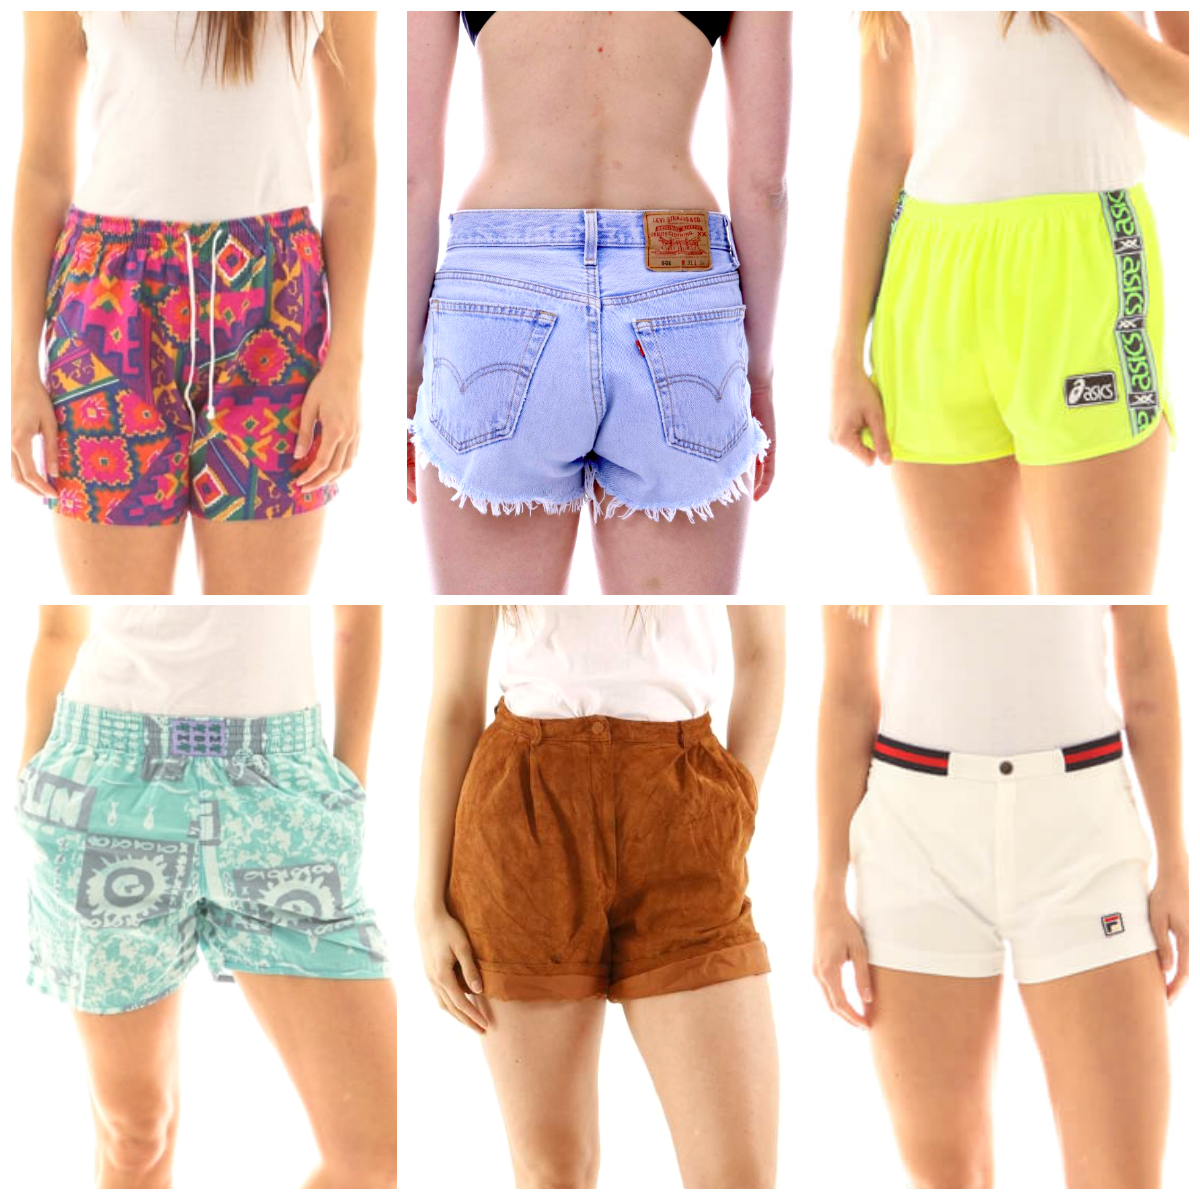 Shorts Categorie Pic.jpg